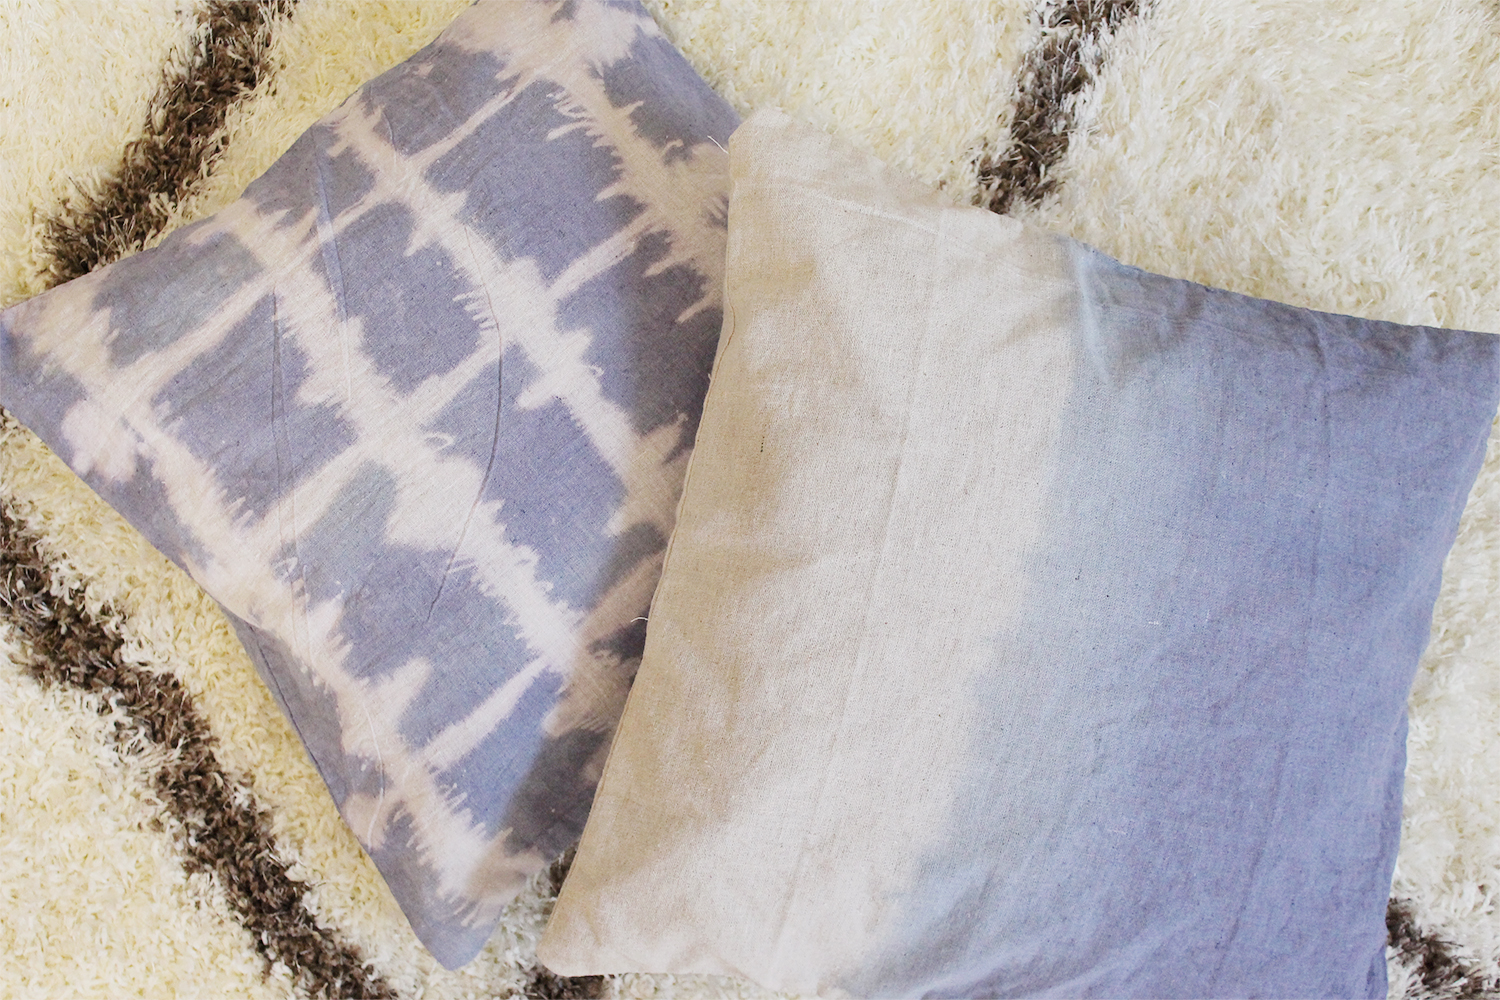 Make Your Own Pretty Tie Dye Pillows - It's So Easy and Fun! diy easy colorful fun 70s style grunge teen dorm kids fun project throw pillows reuse recycle old pillows5